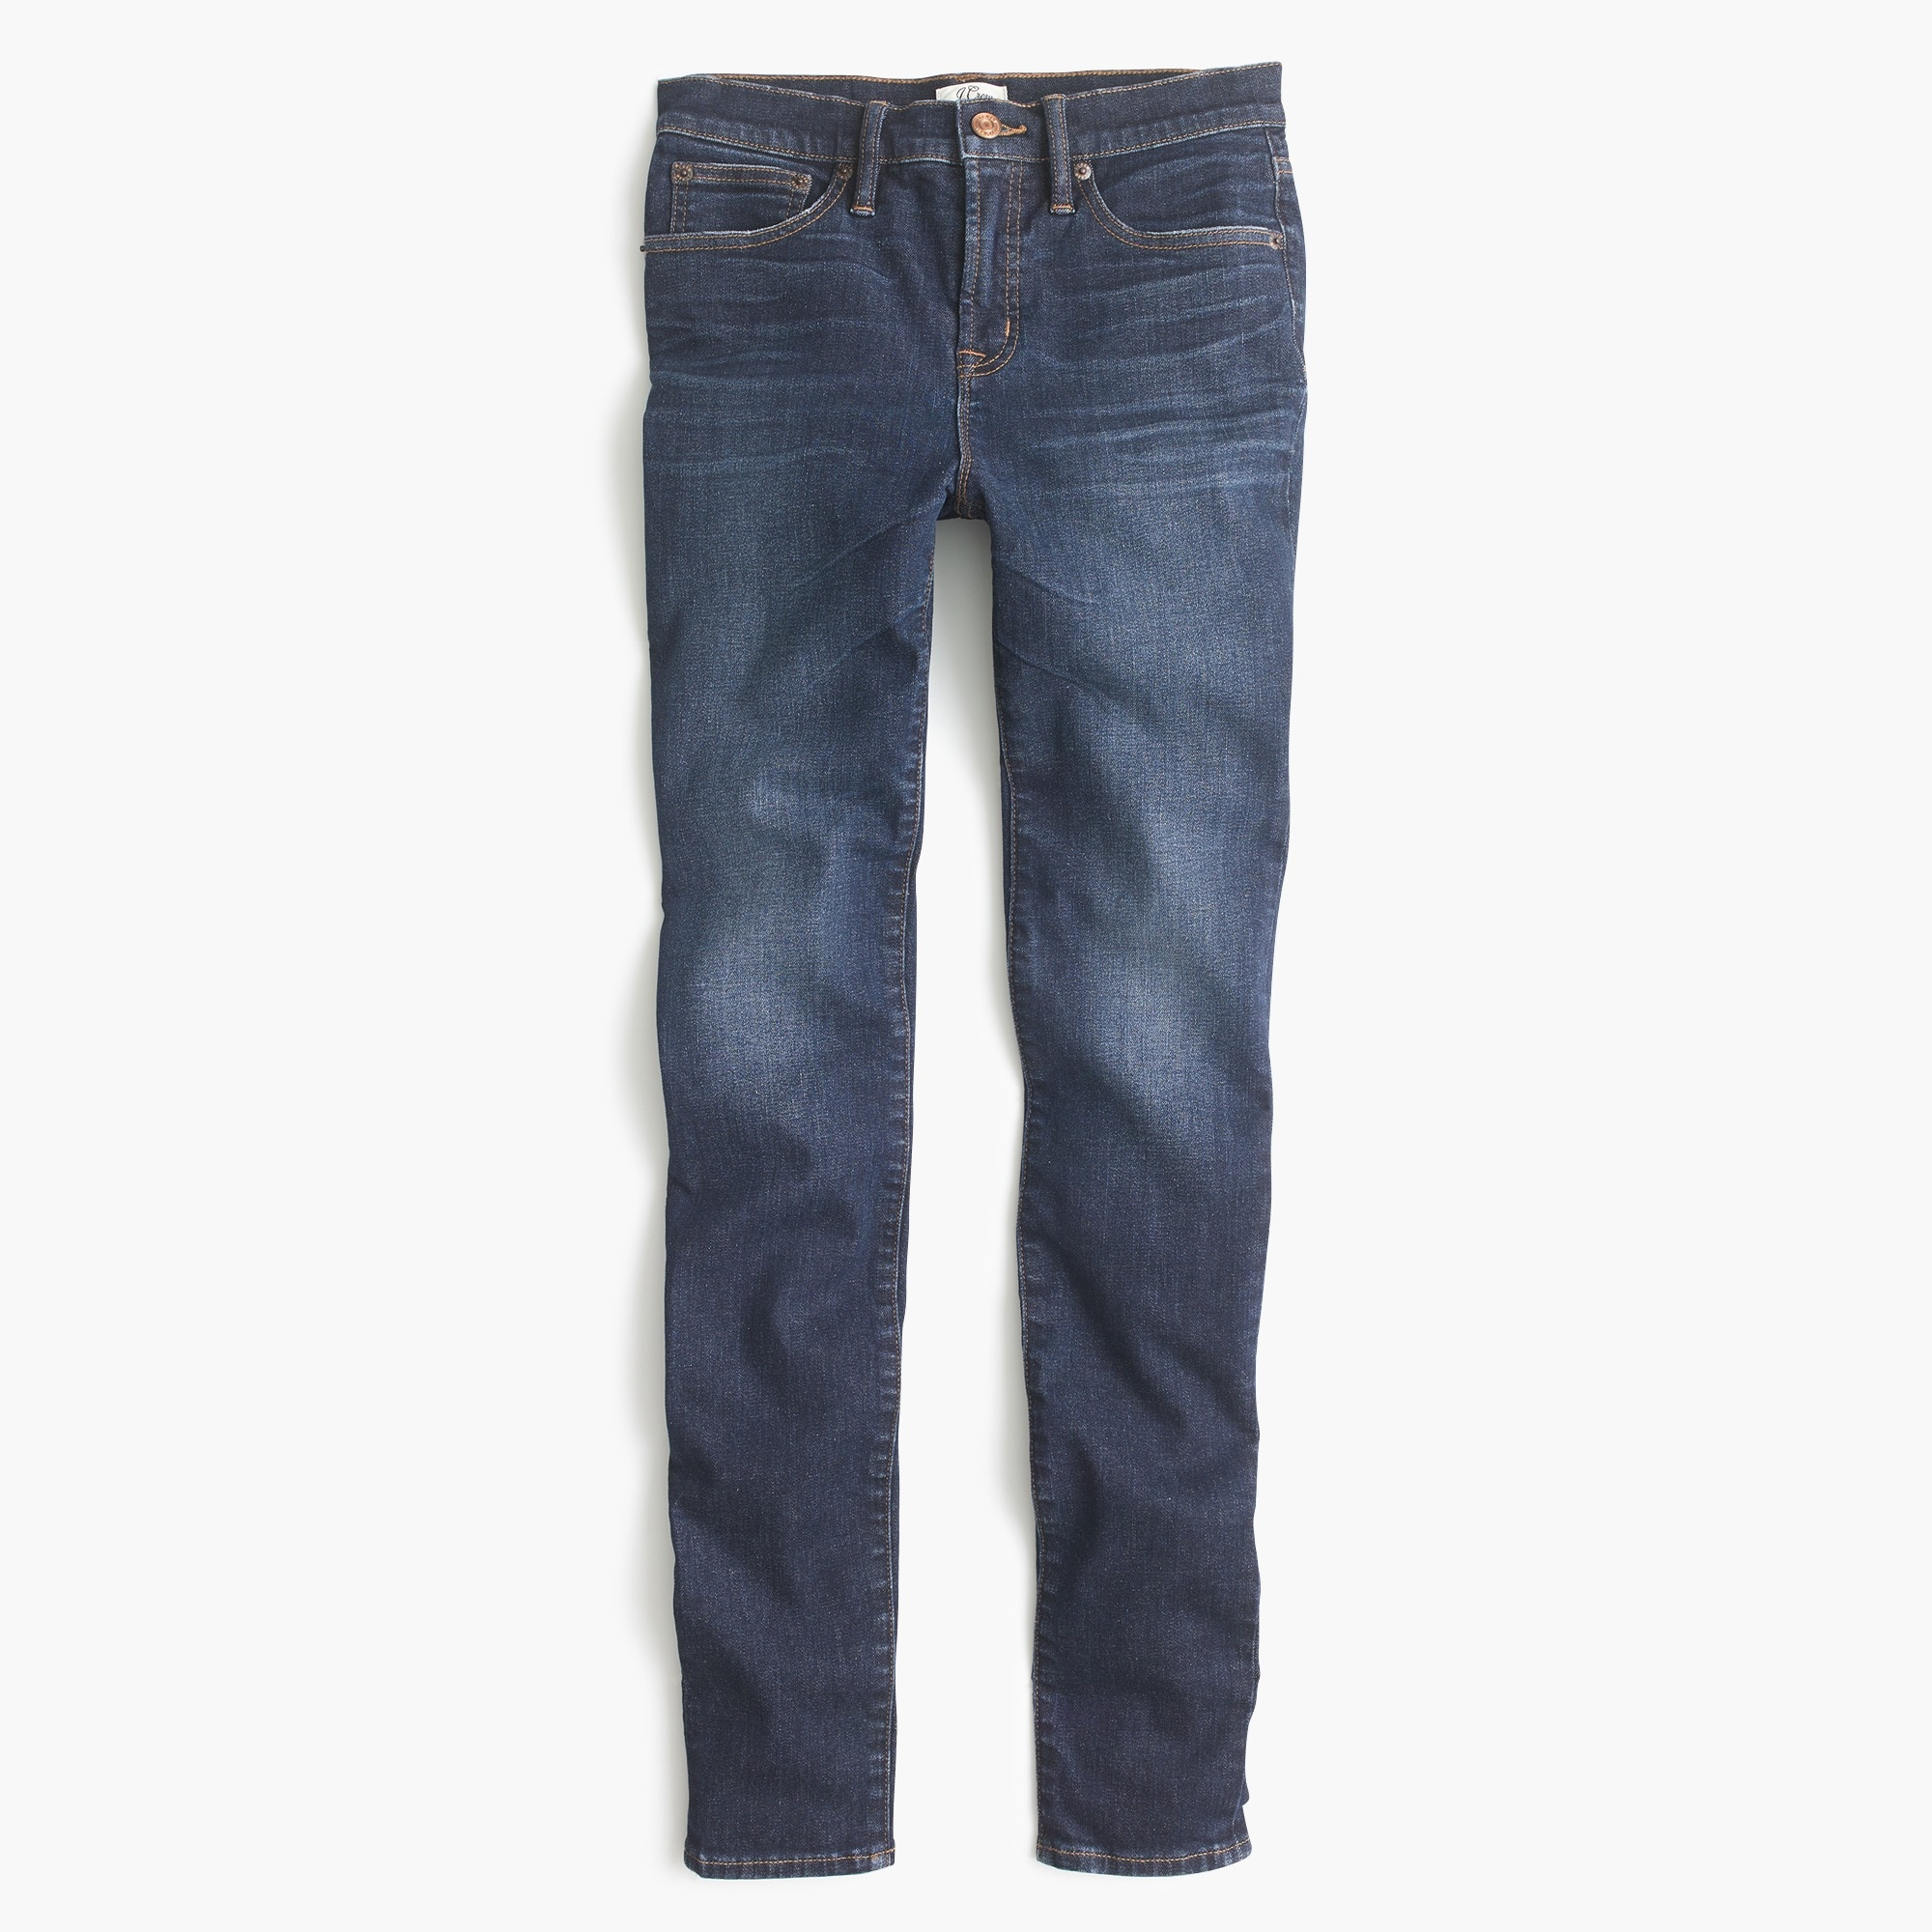 "Image 1 for 9"" high-rise stretchy toothpick jean in Solano wash"